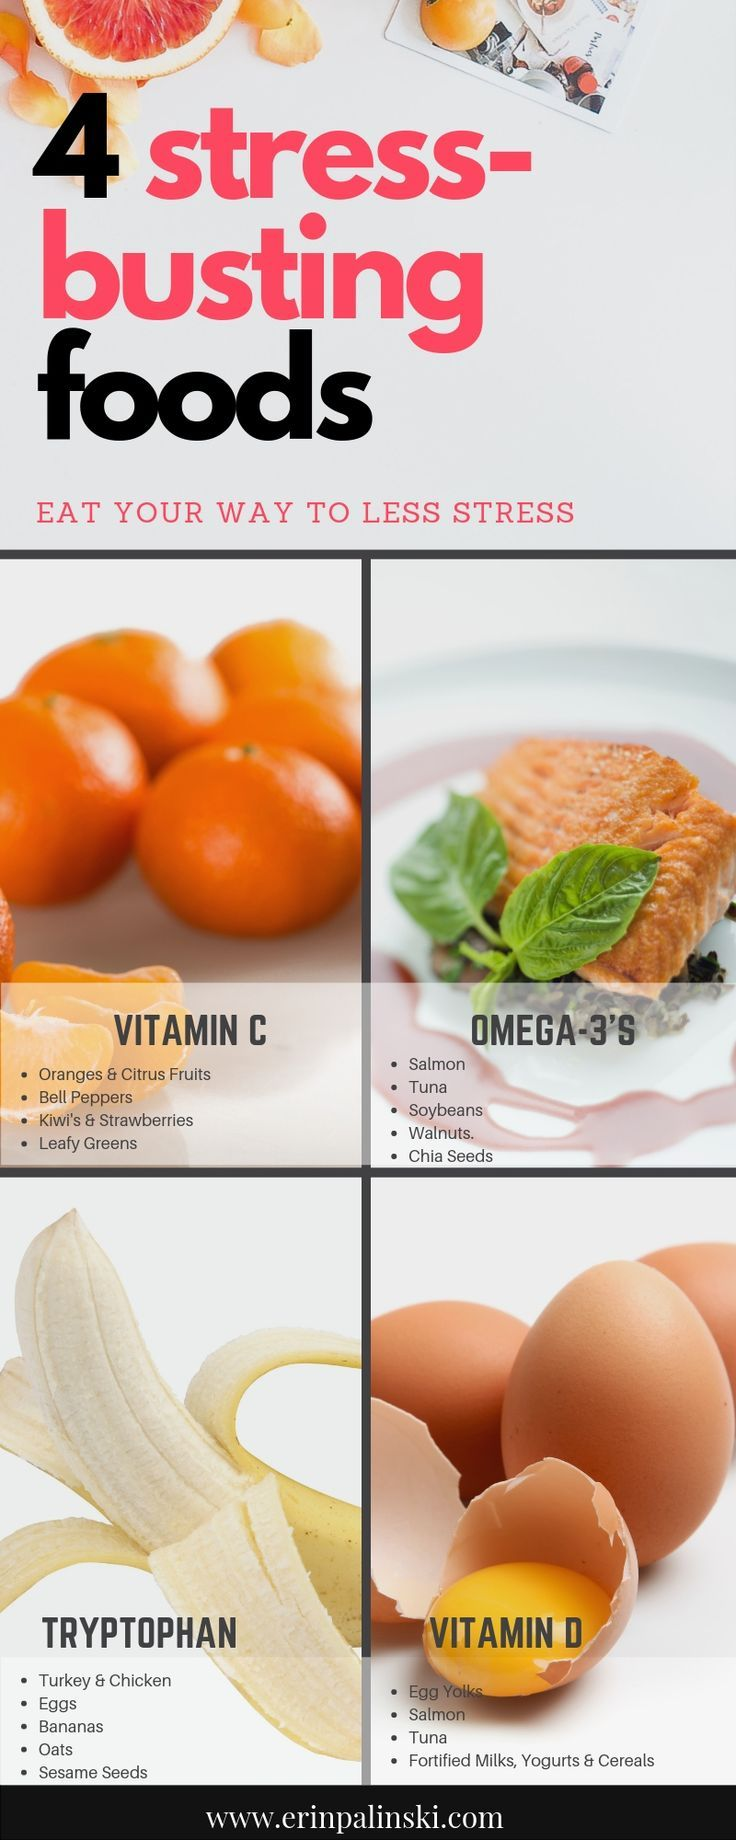 4 Stress-Busting Foods Vitamin C Omega 3's Tryptophan Vitamin D. #mealplanning #mealplanningguide #h...